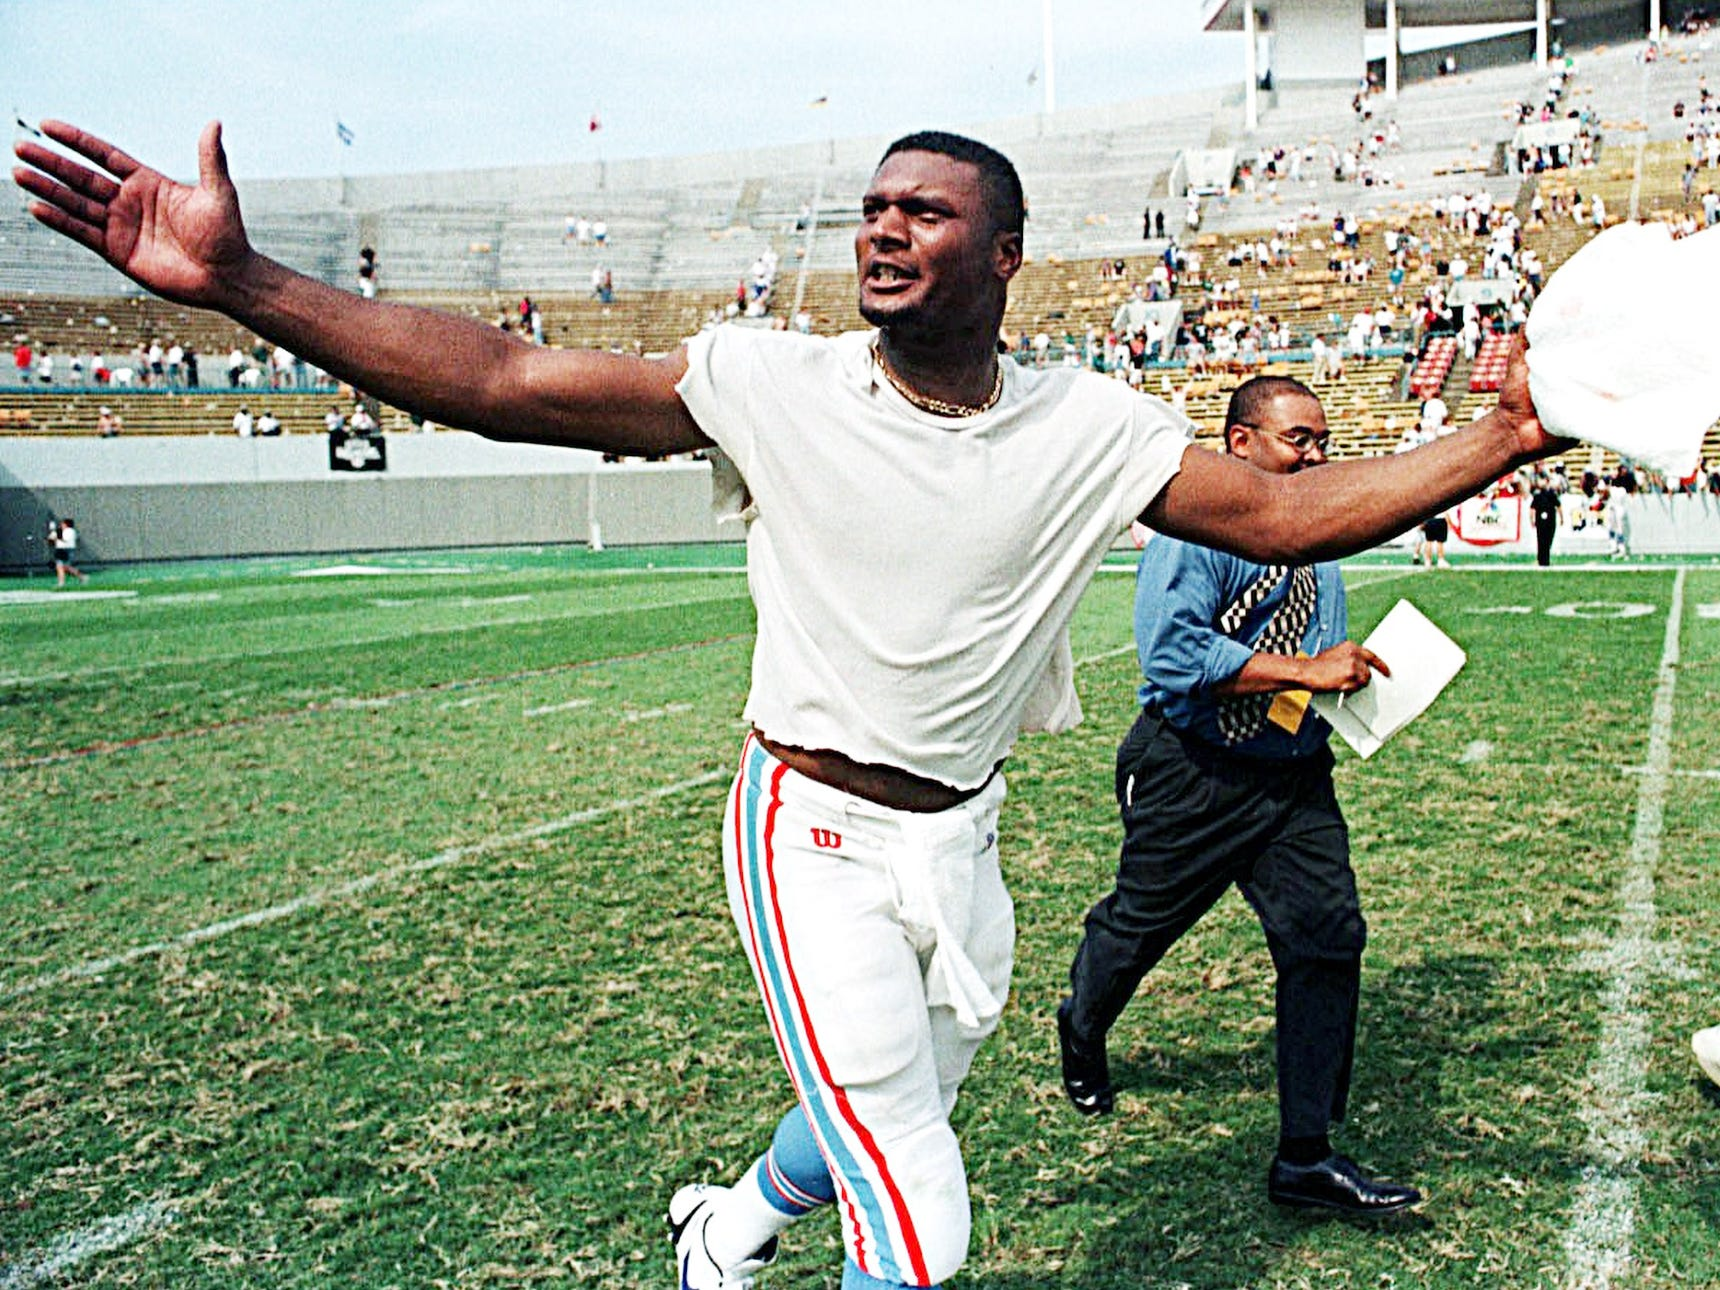 Tennessee Oilers quarterback Steve McNair responds to the crowd upon returning to the field from the locker room following the team's opening day 24-21 overtime victory over the Oakland Raiders Aug. 31, 1997.